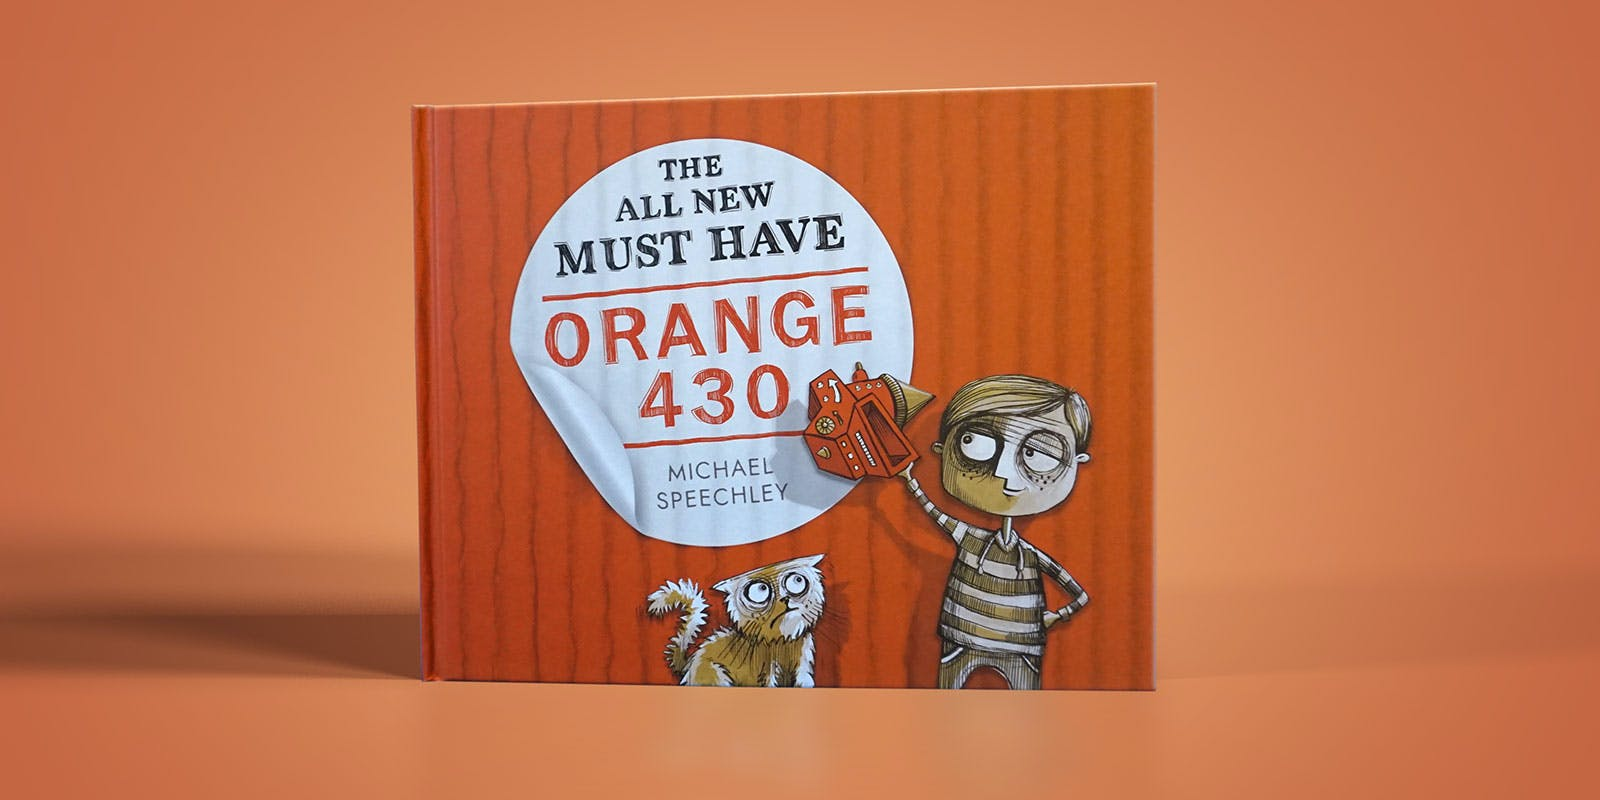 The All New Must Have Orange 430 activity pack